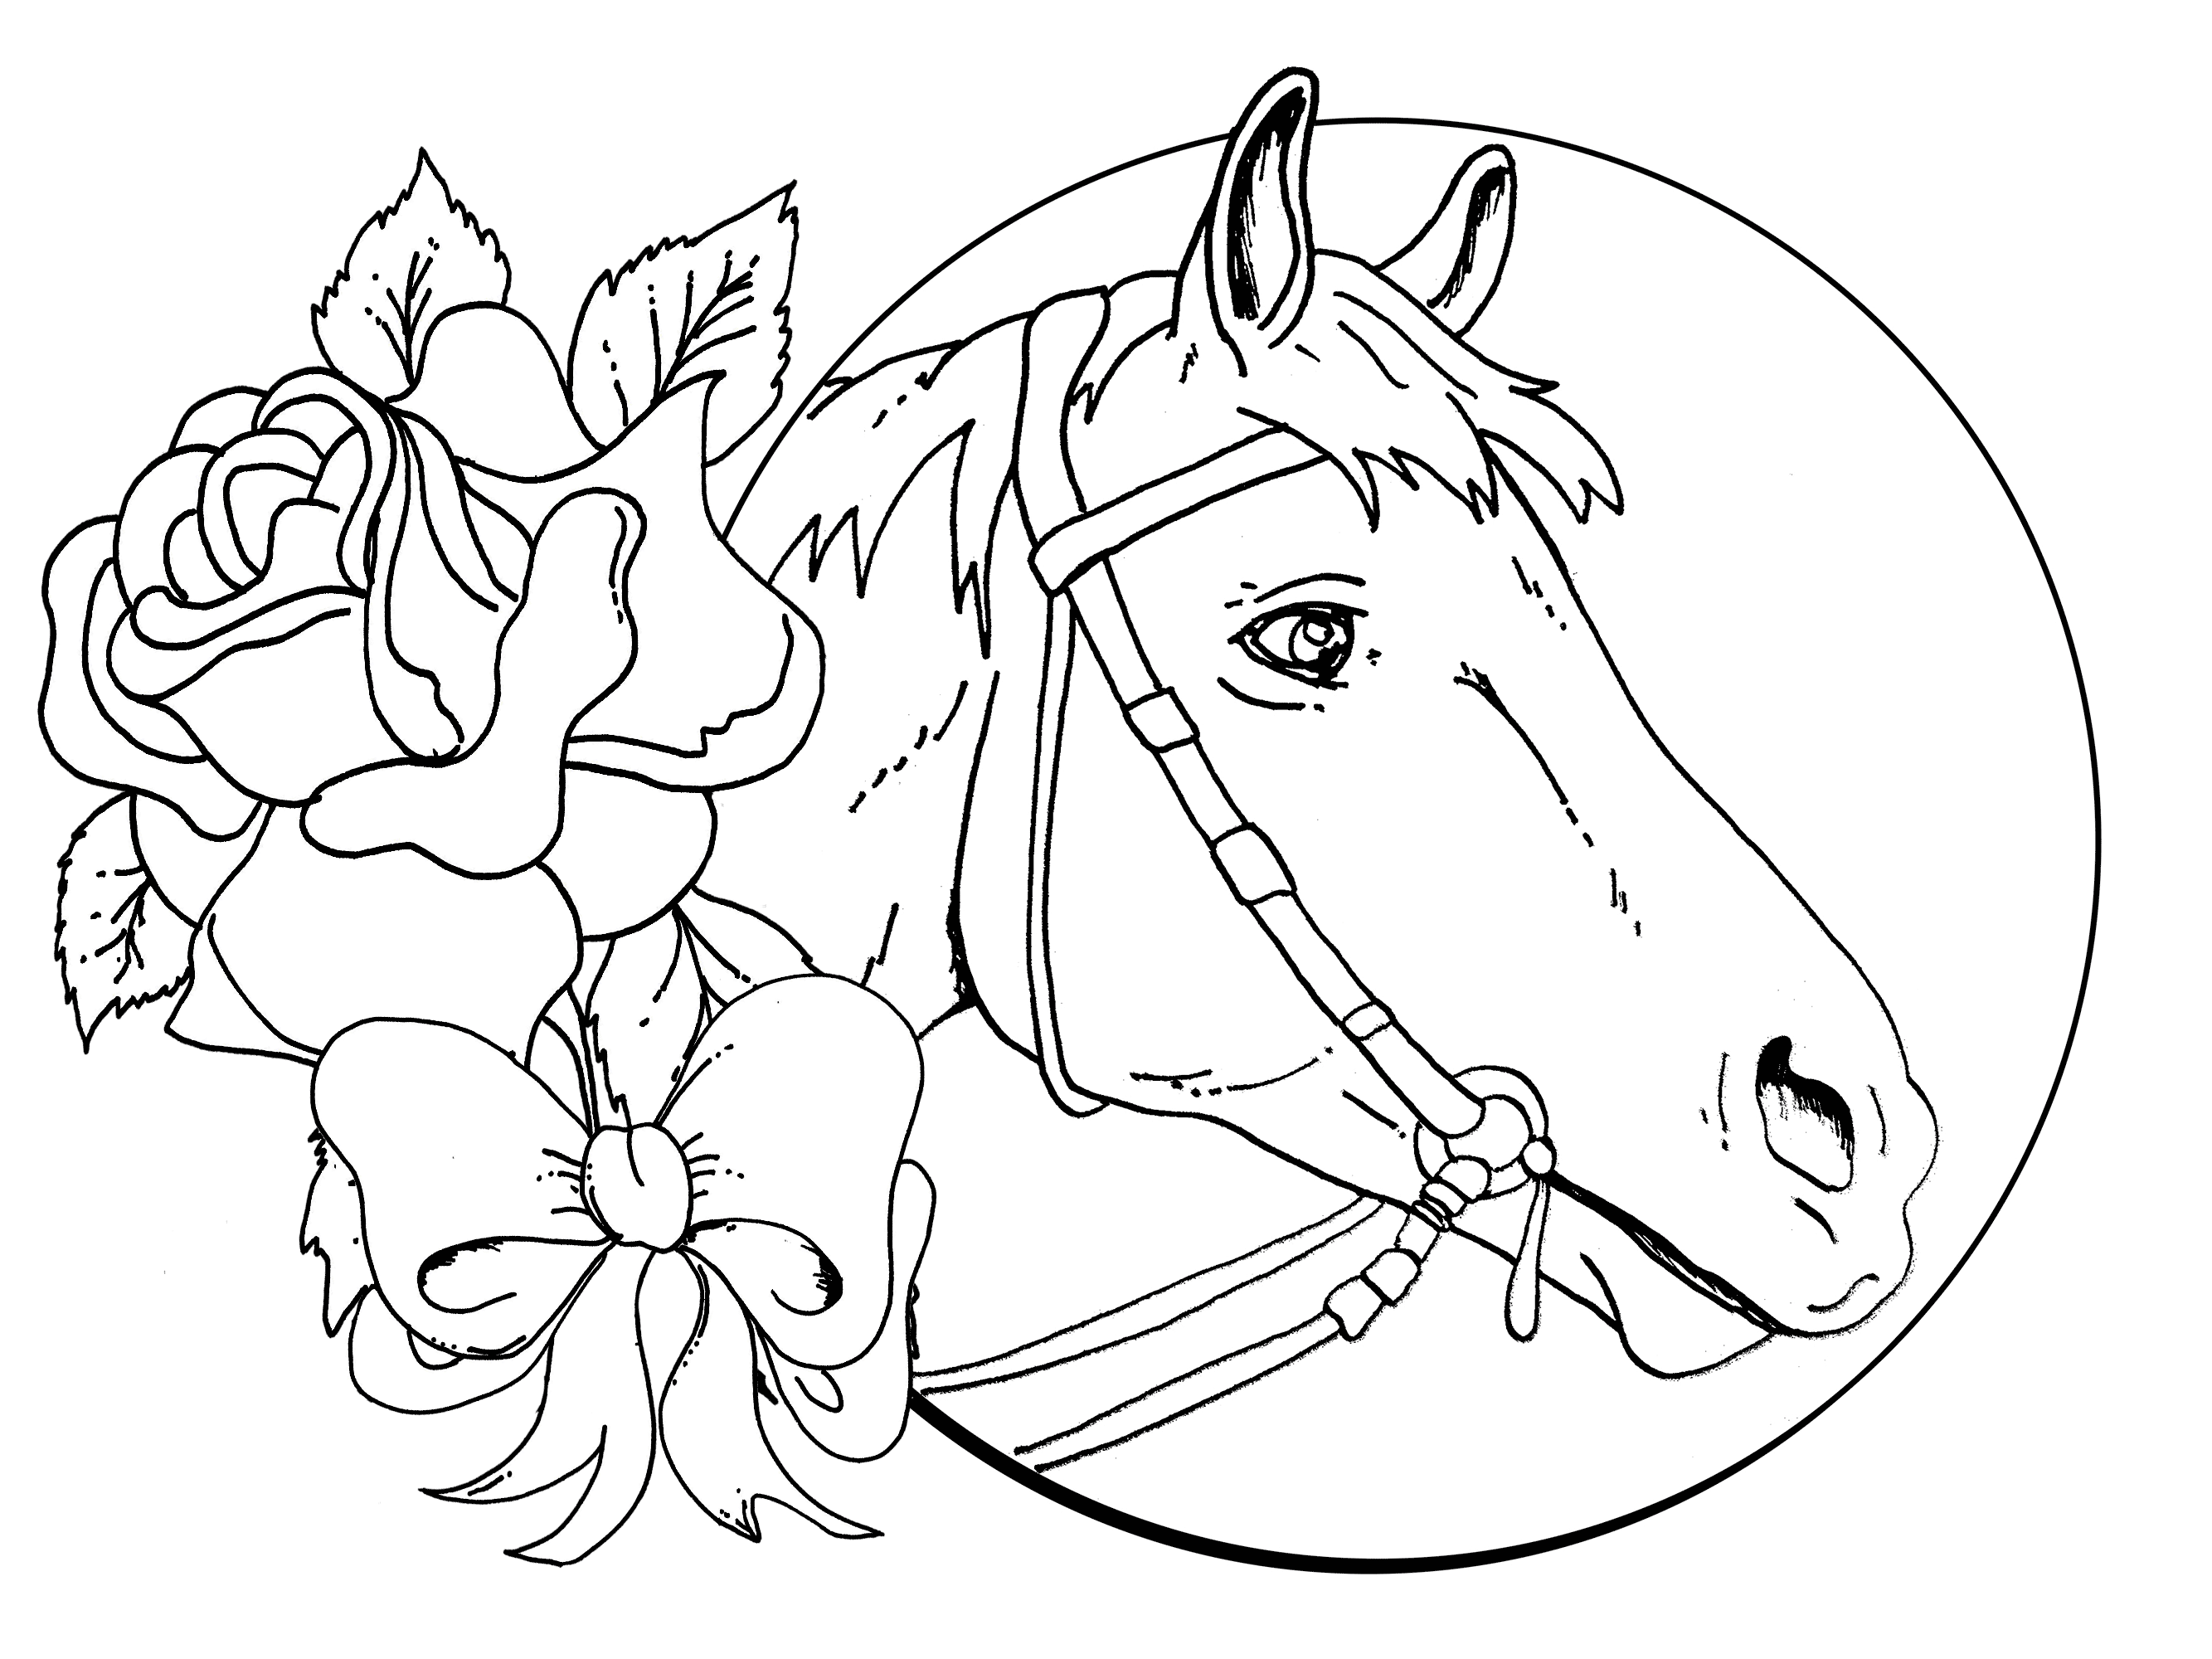 Free Printable Coloring Pages For Teens - Coloring Home